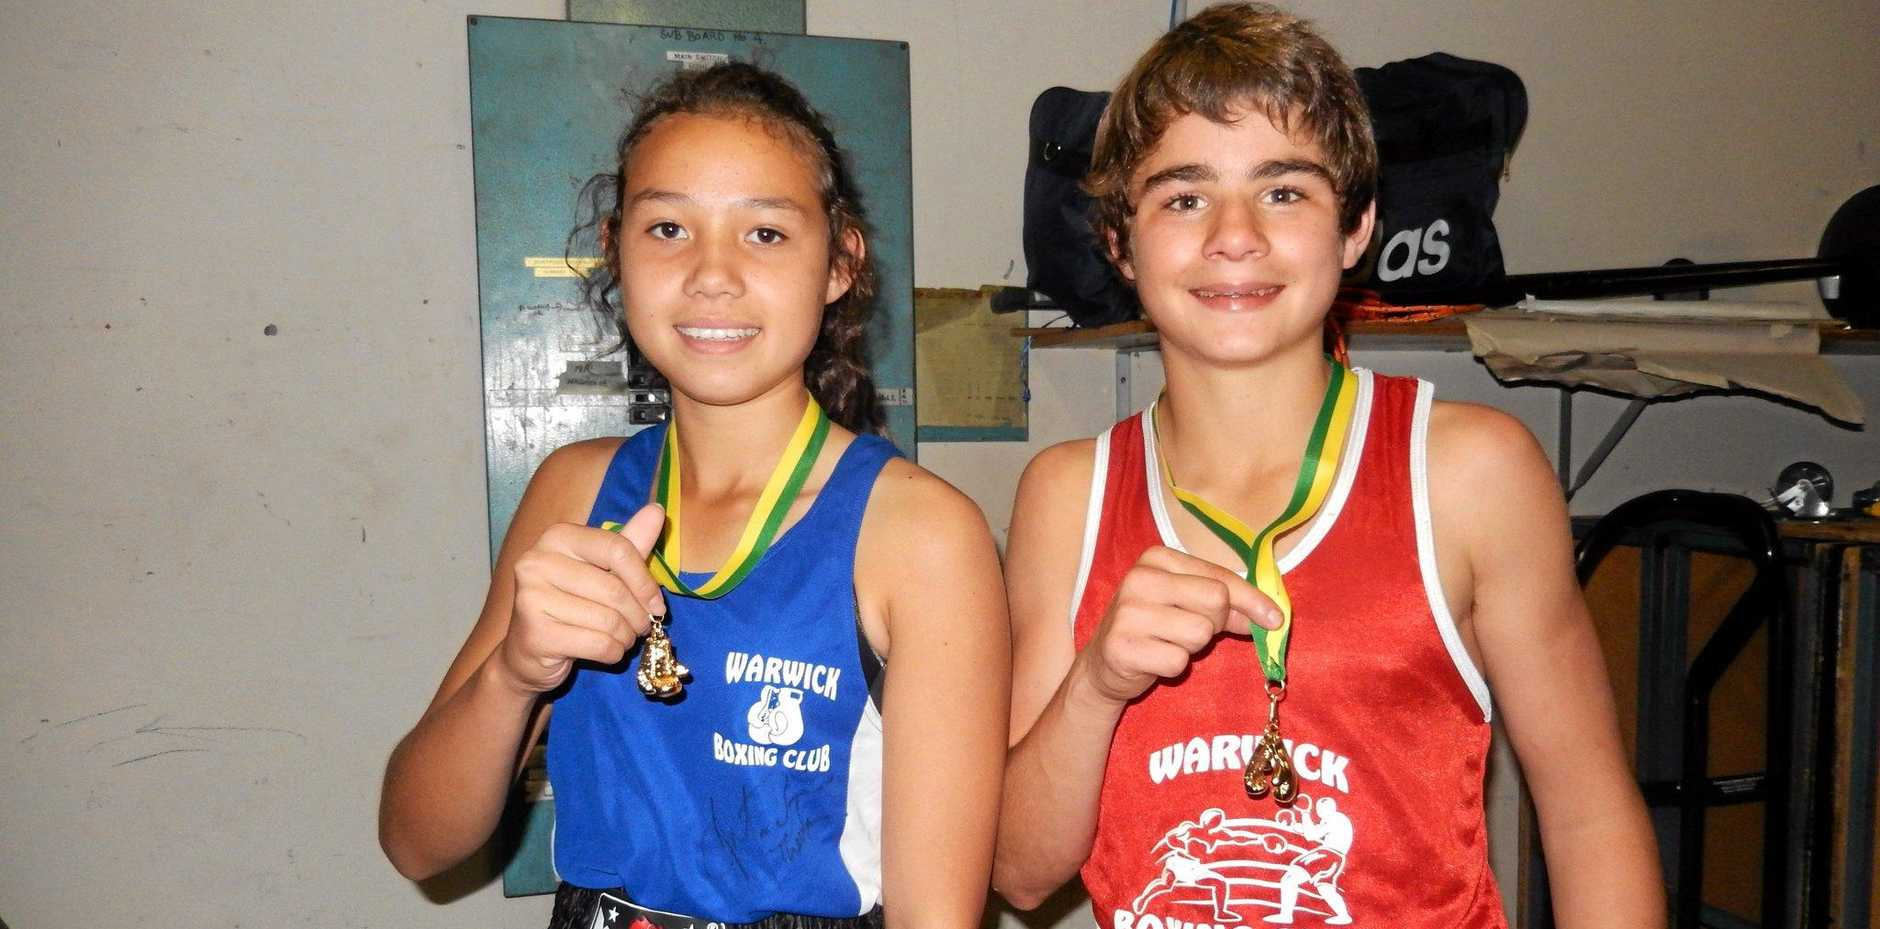 Rose City Boxing Club members Teresa Poole and Jacob Wyllie, pictured after winning State Golden Gloves championship medals, will compete this weekend at Nerang.